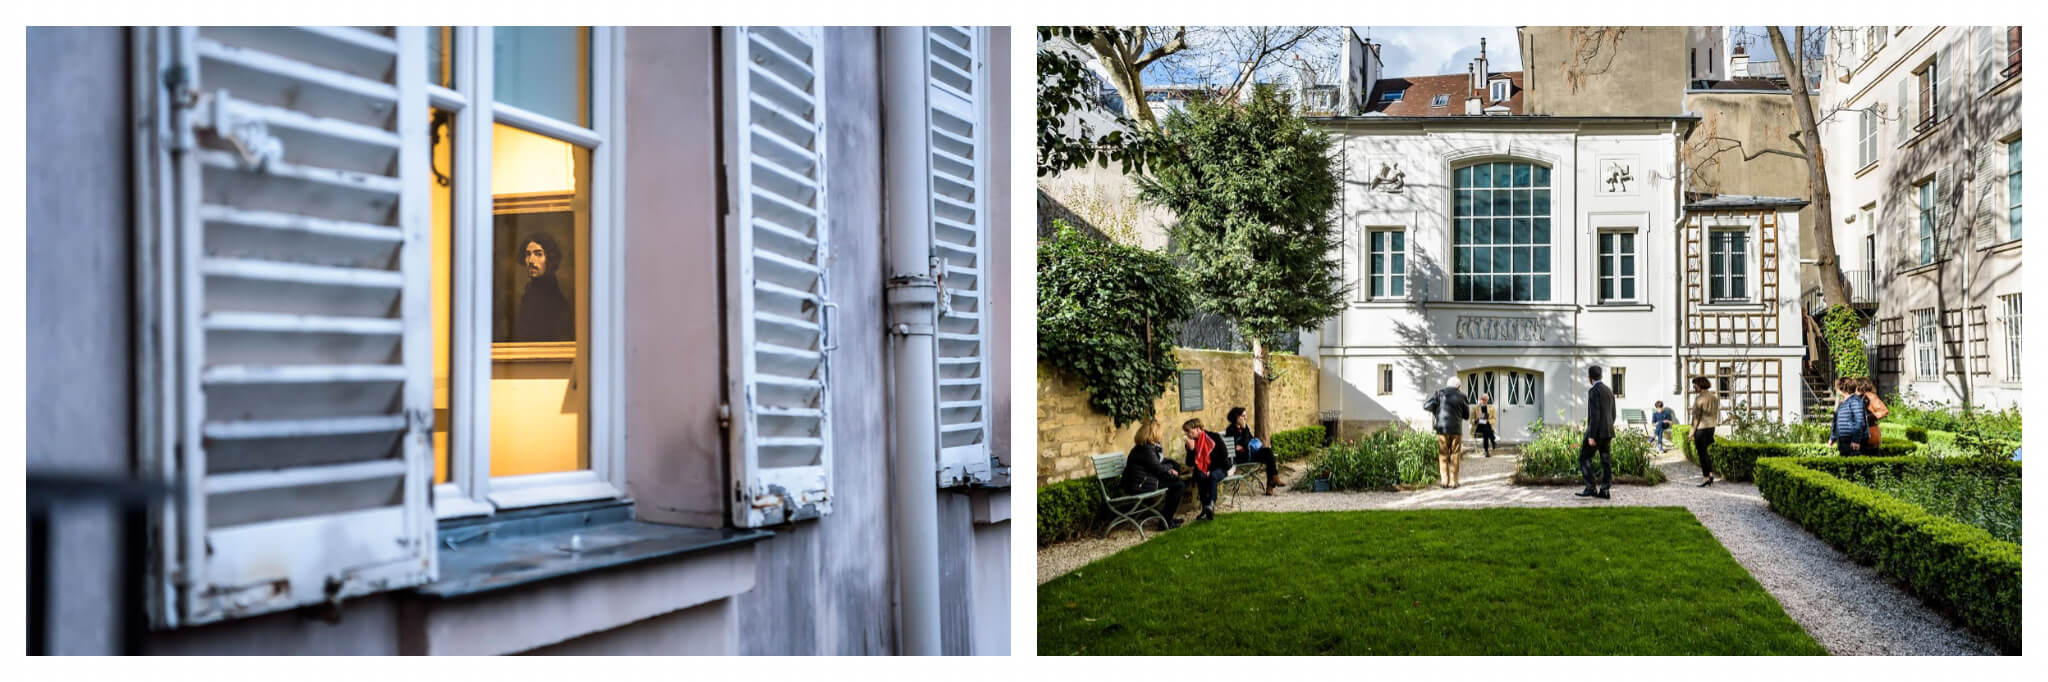 Left, a glimpse inside artist Eugene Delacroix's former residence, now a museum. Right, the gardens of the museum in Paris.